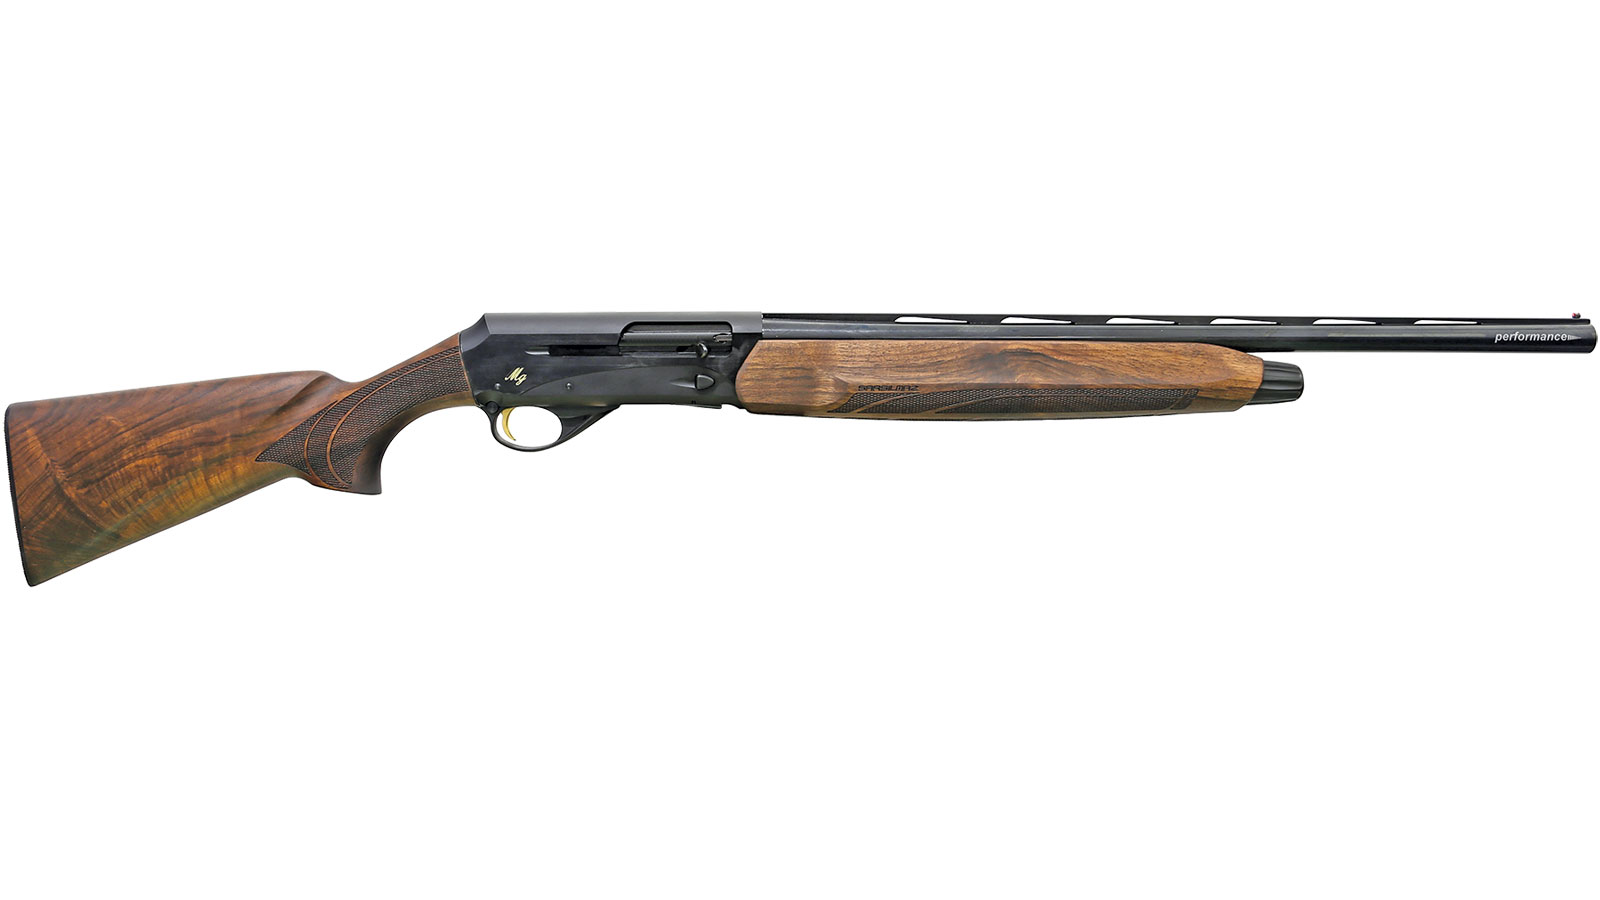 TR Imports X700 Youth Black with Turkish Walnut Stock12 Gauge 28 Inch Barrel 5 Rd